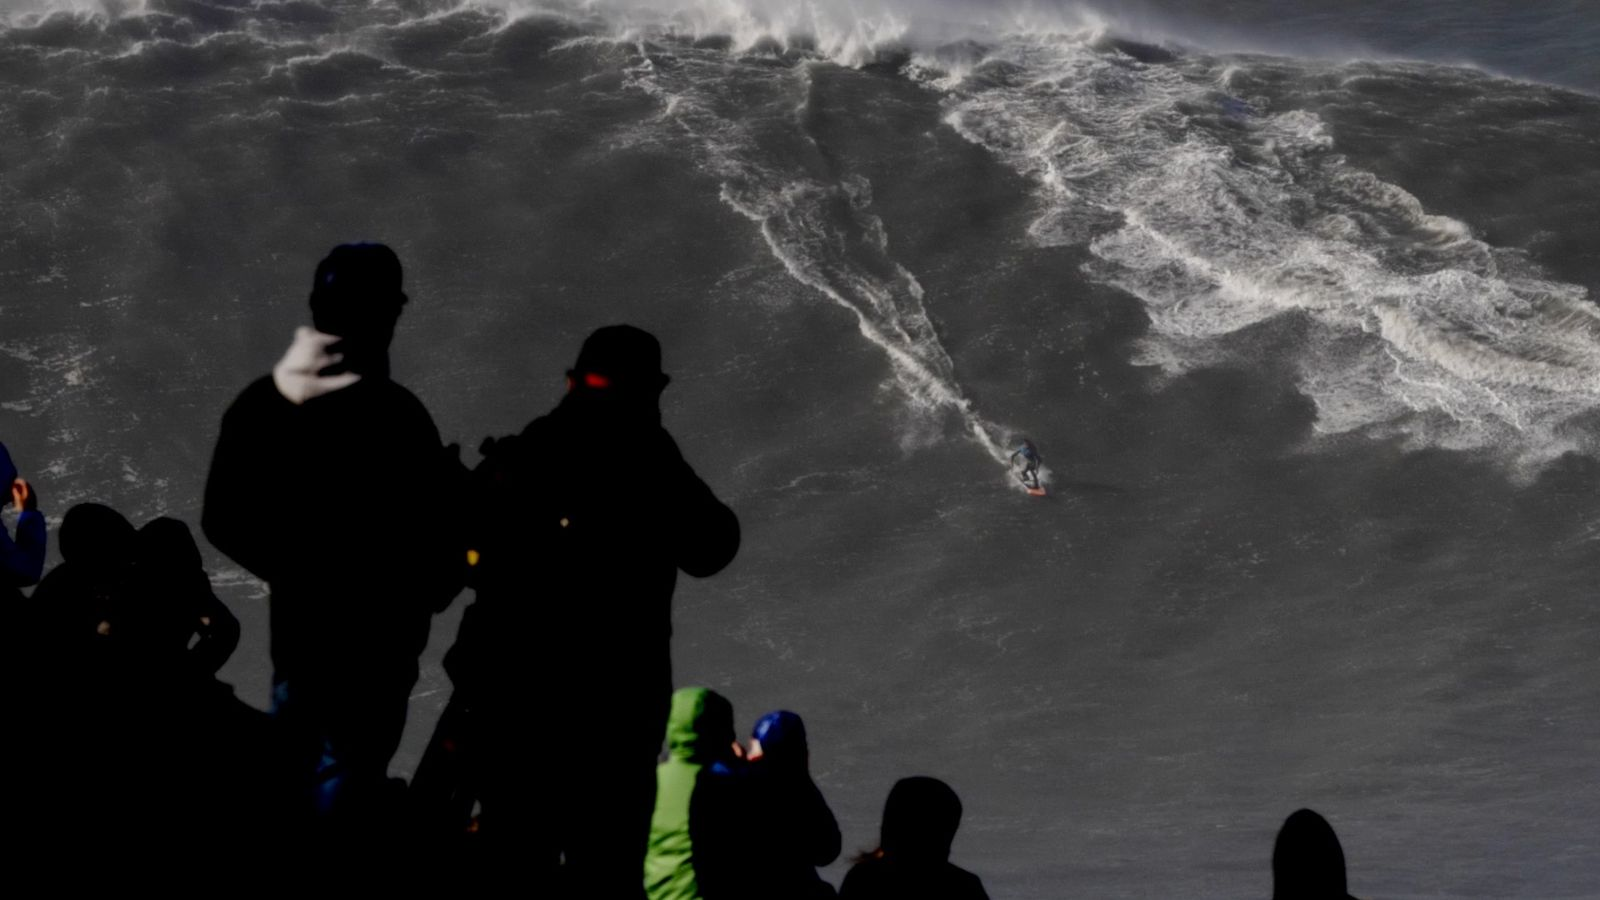 Watch Surfer Ride Record-Breaking Wave